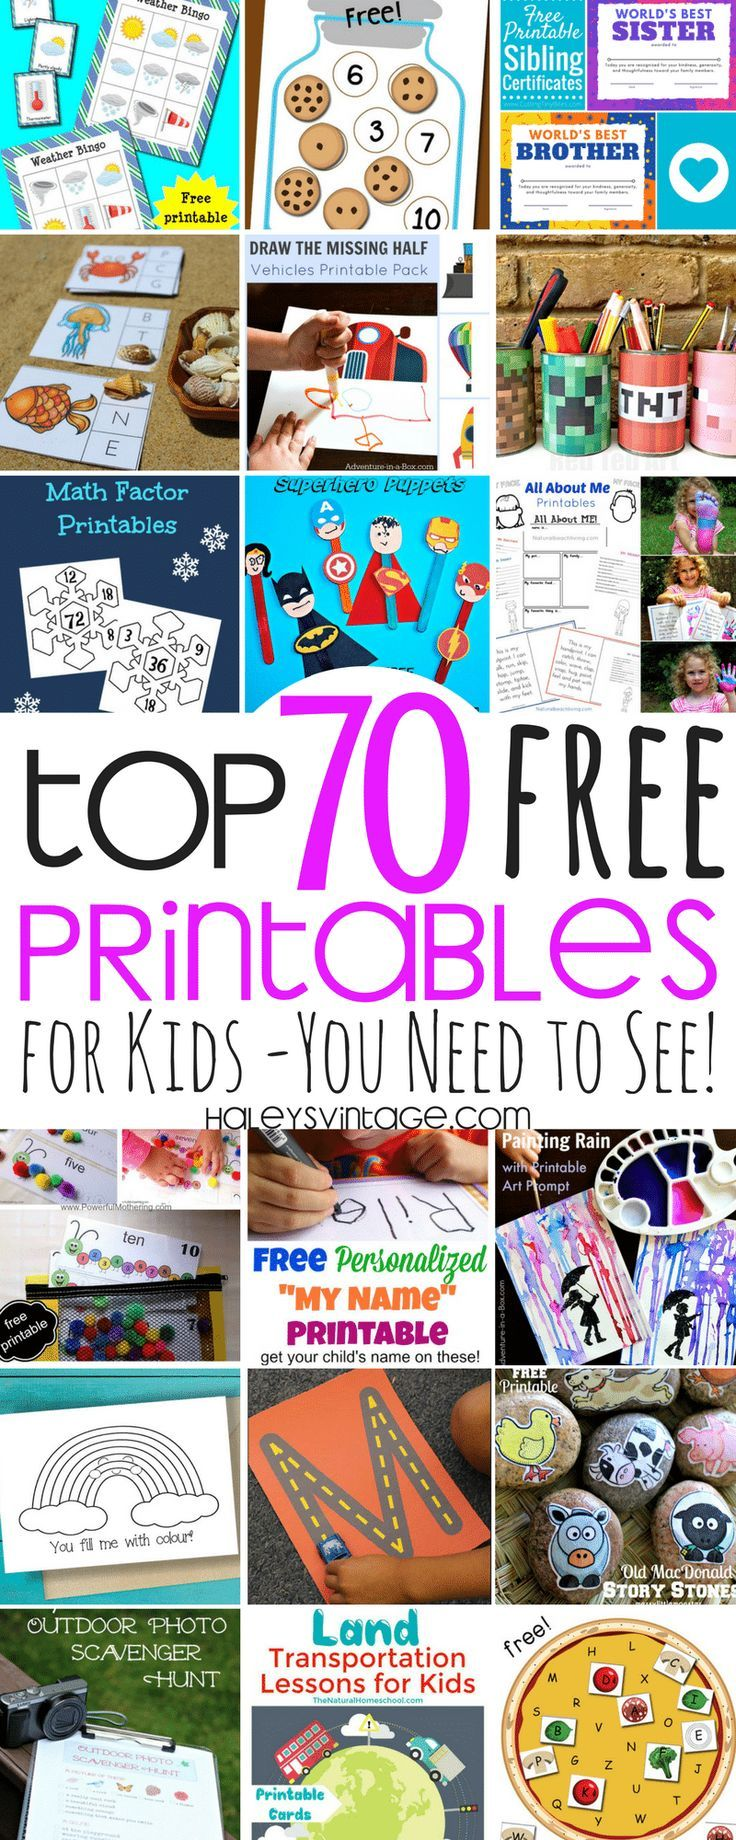 My Top 70 Free Printables for Kids - You Need to See! Love free printables? Some are educational, and others are just for fun, and today I am sharing My Top 70 Free Printables for Kids!